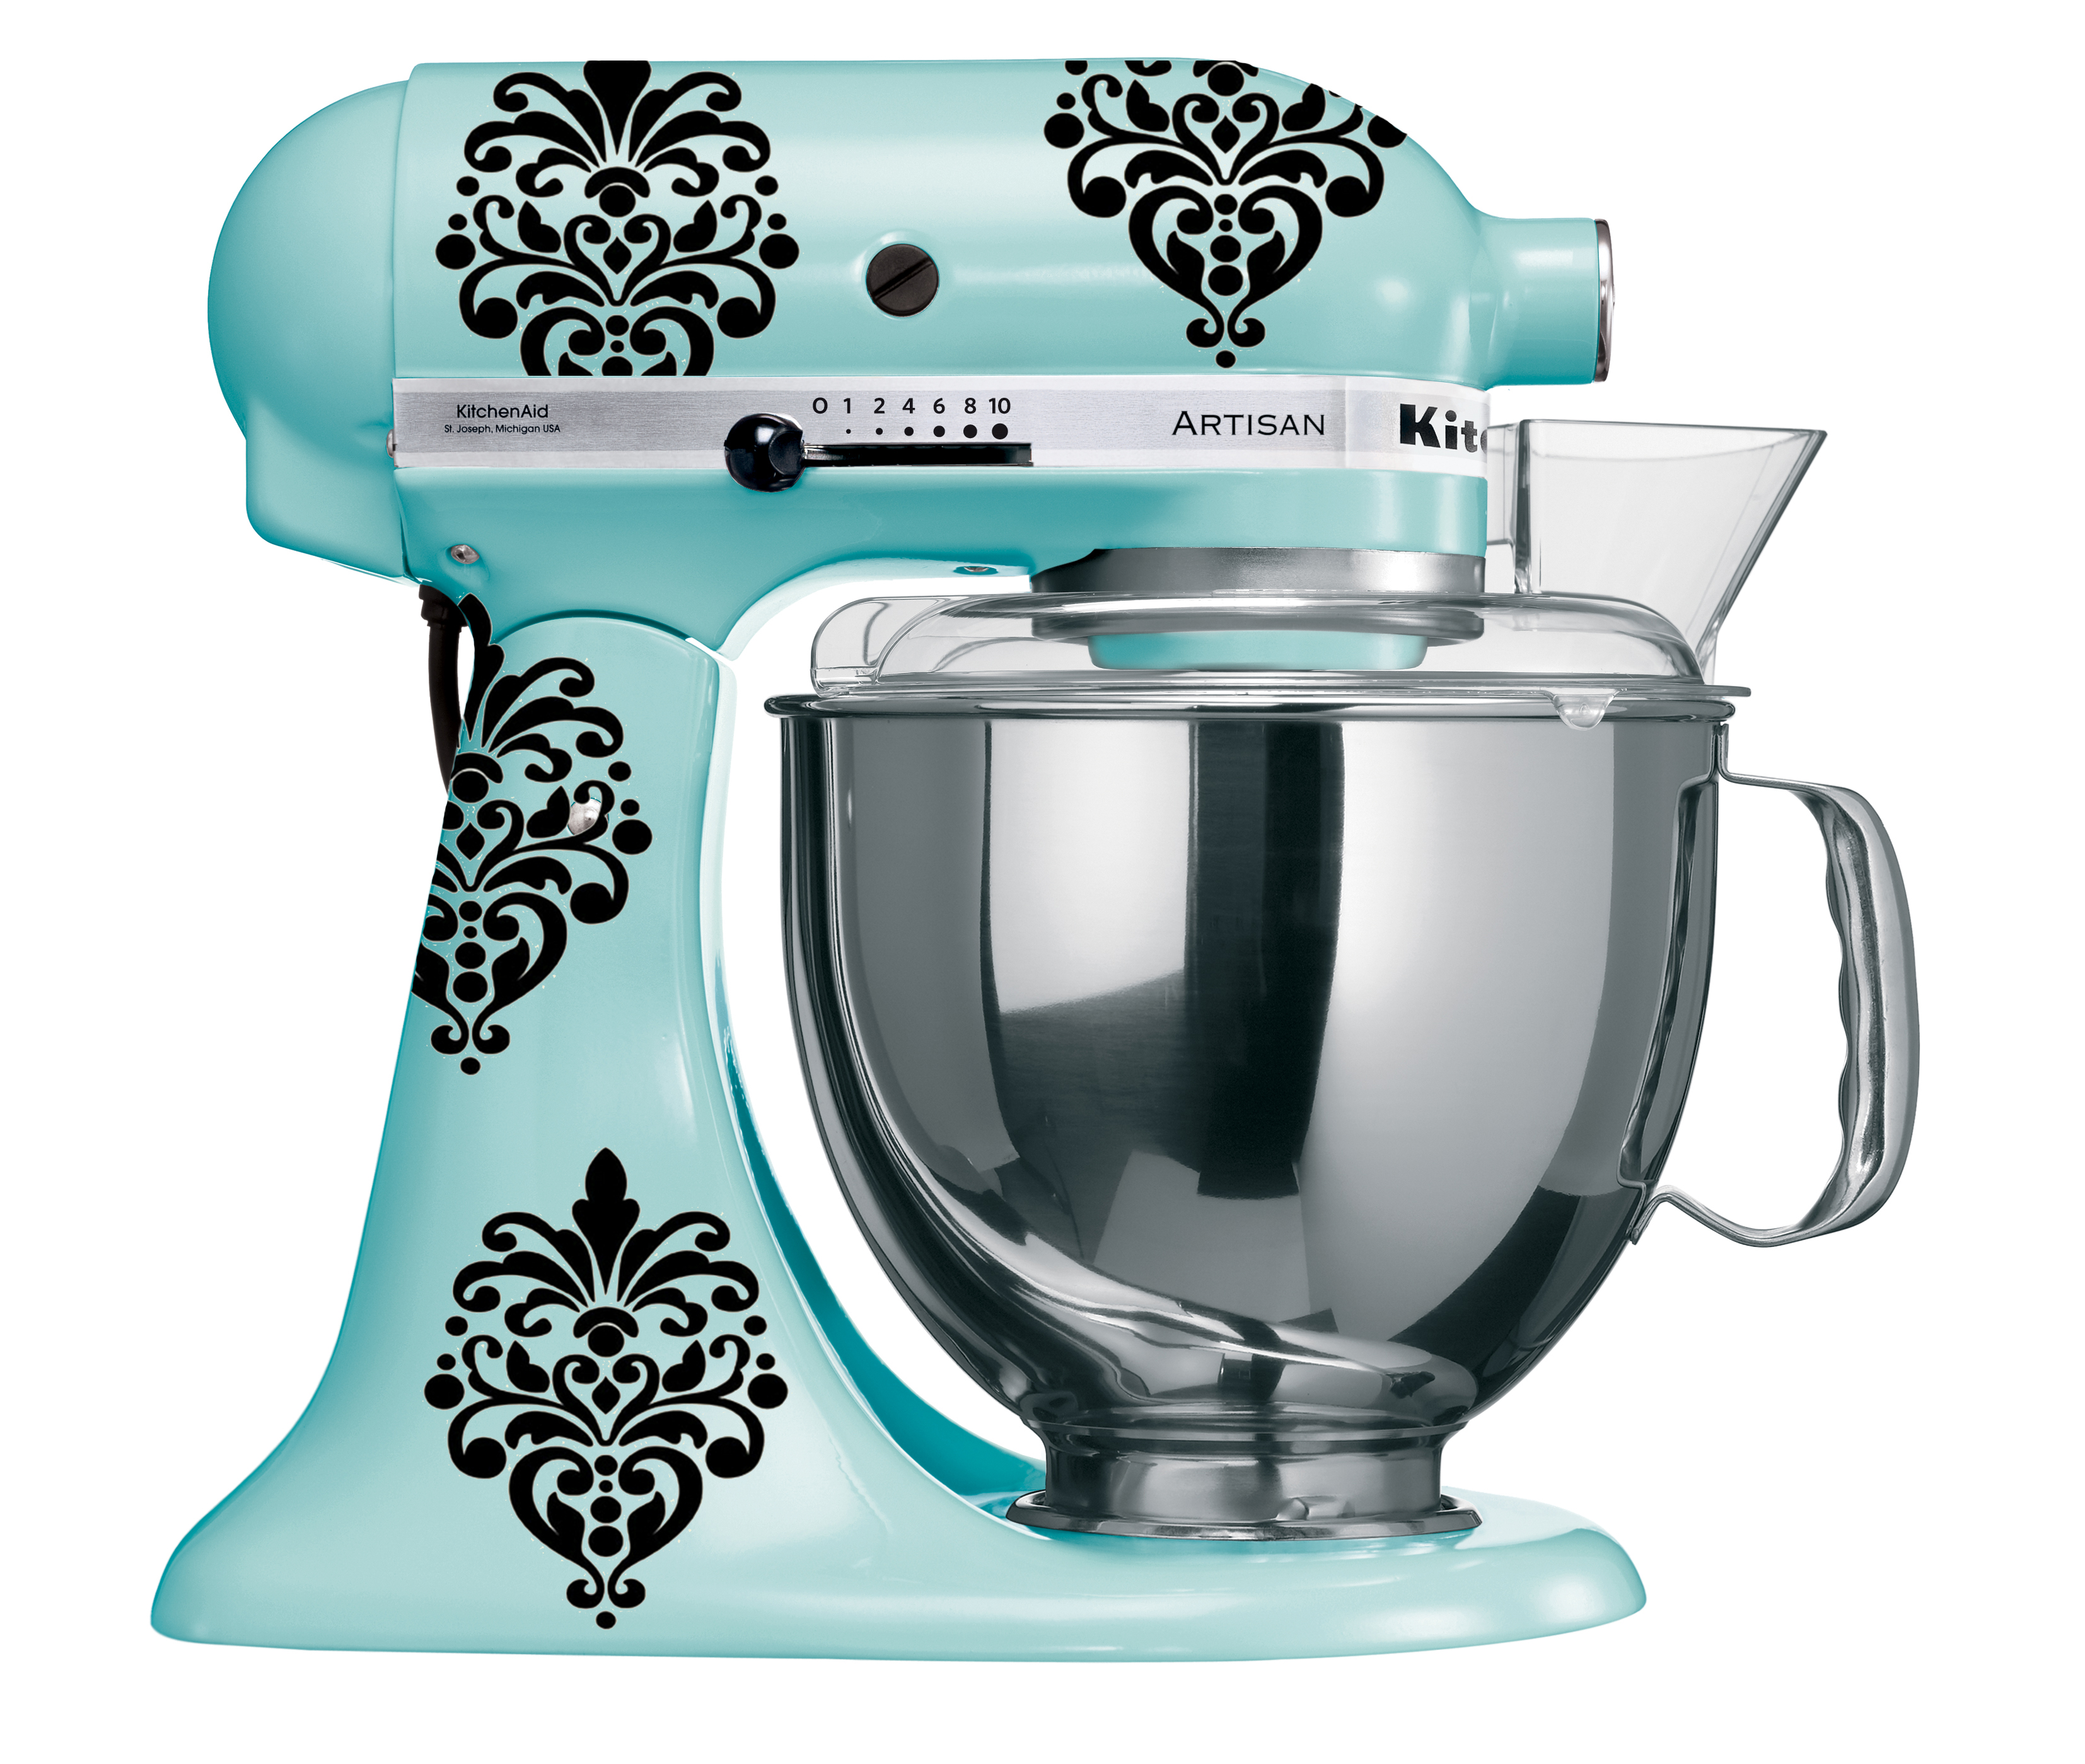 KitchenAid Elegant Damask Vinyl Decals Type II- Set of 8 · Vinyl ...